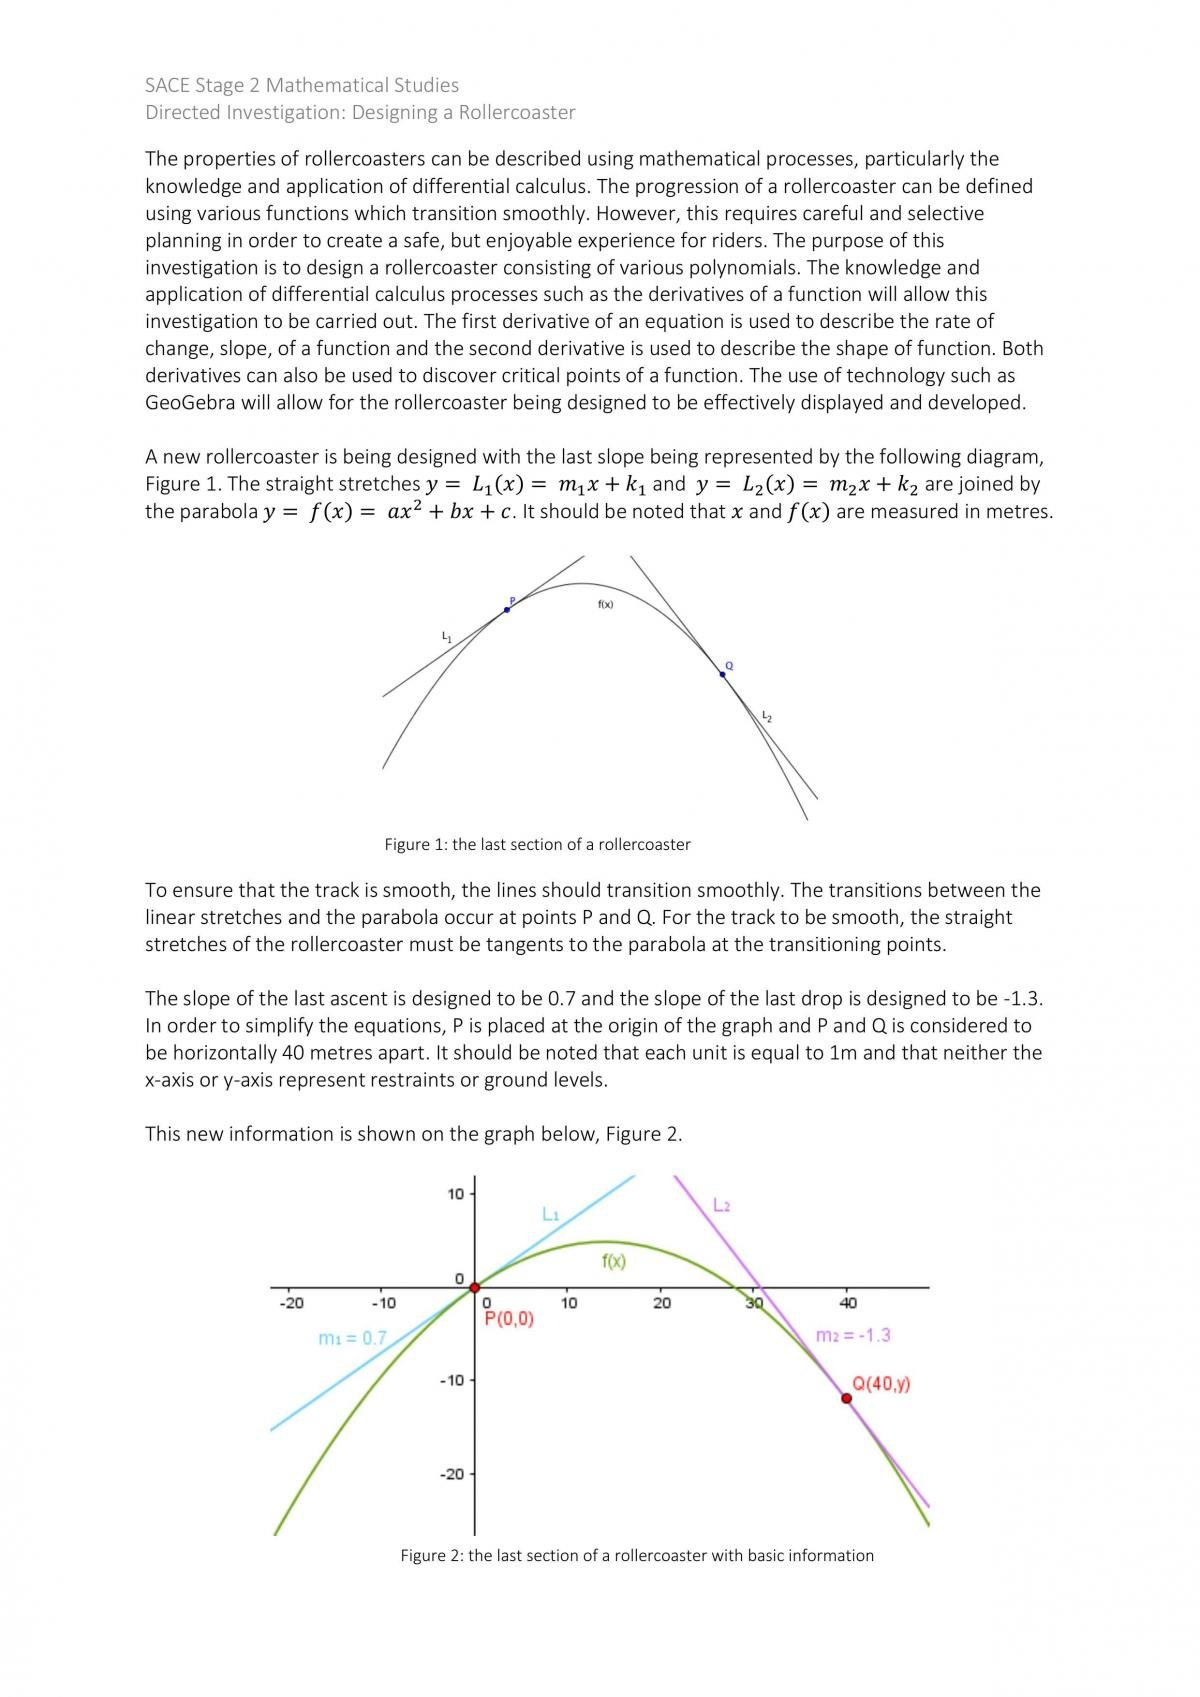 Mathematics - Designing a Rollercoaster - Page 1